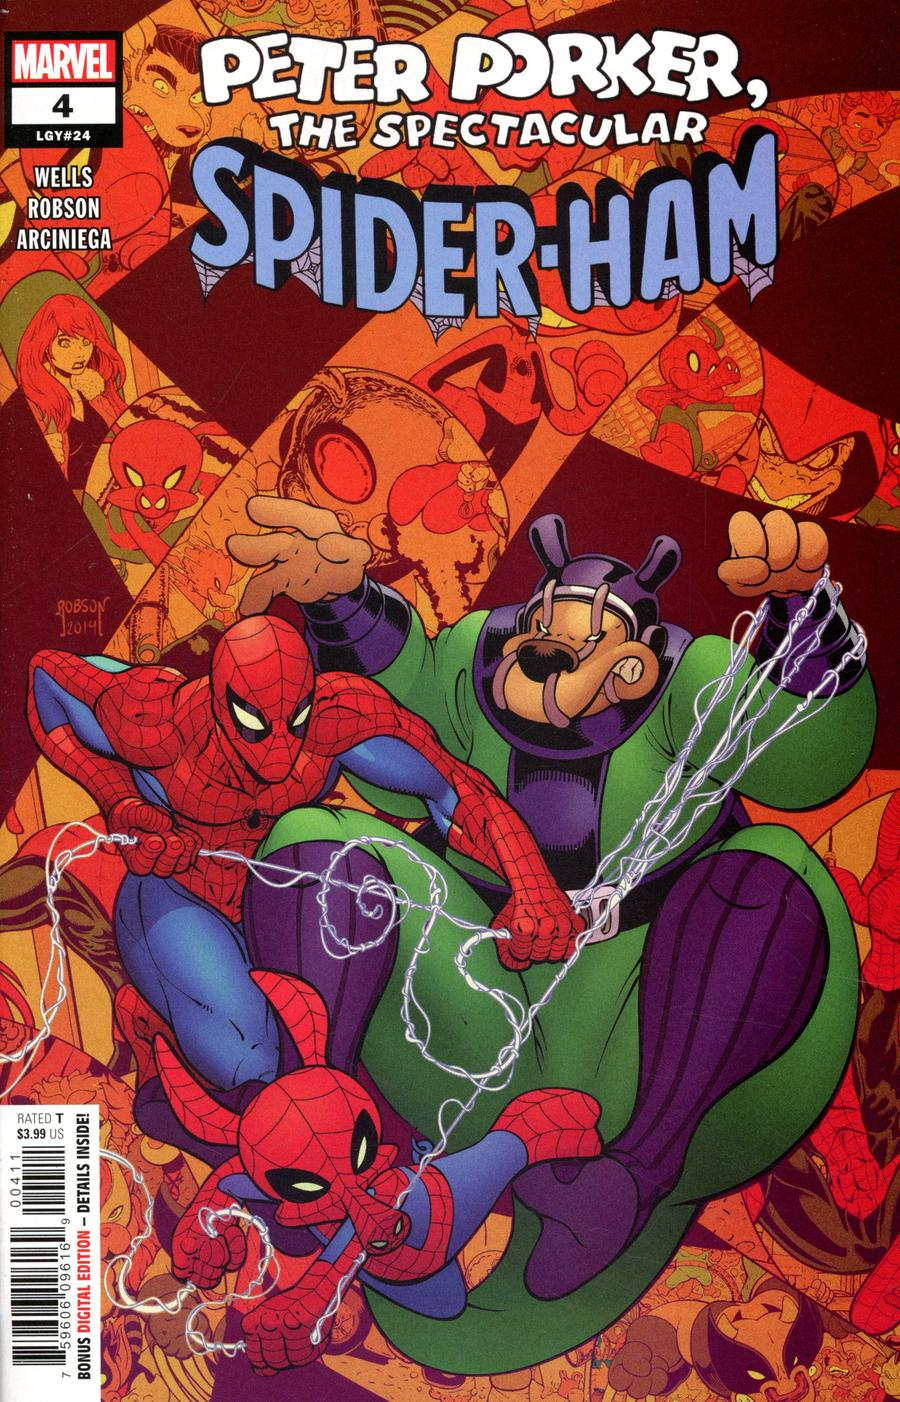 Spider-Ham #4 Cover A Regular Will Robson Cover